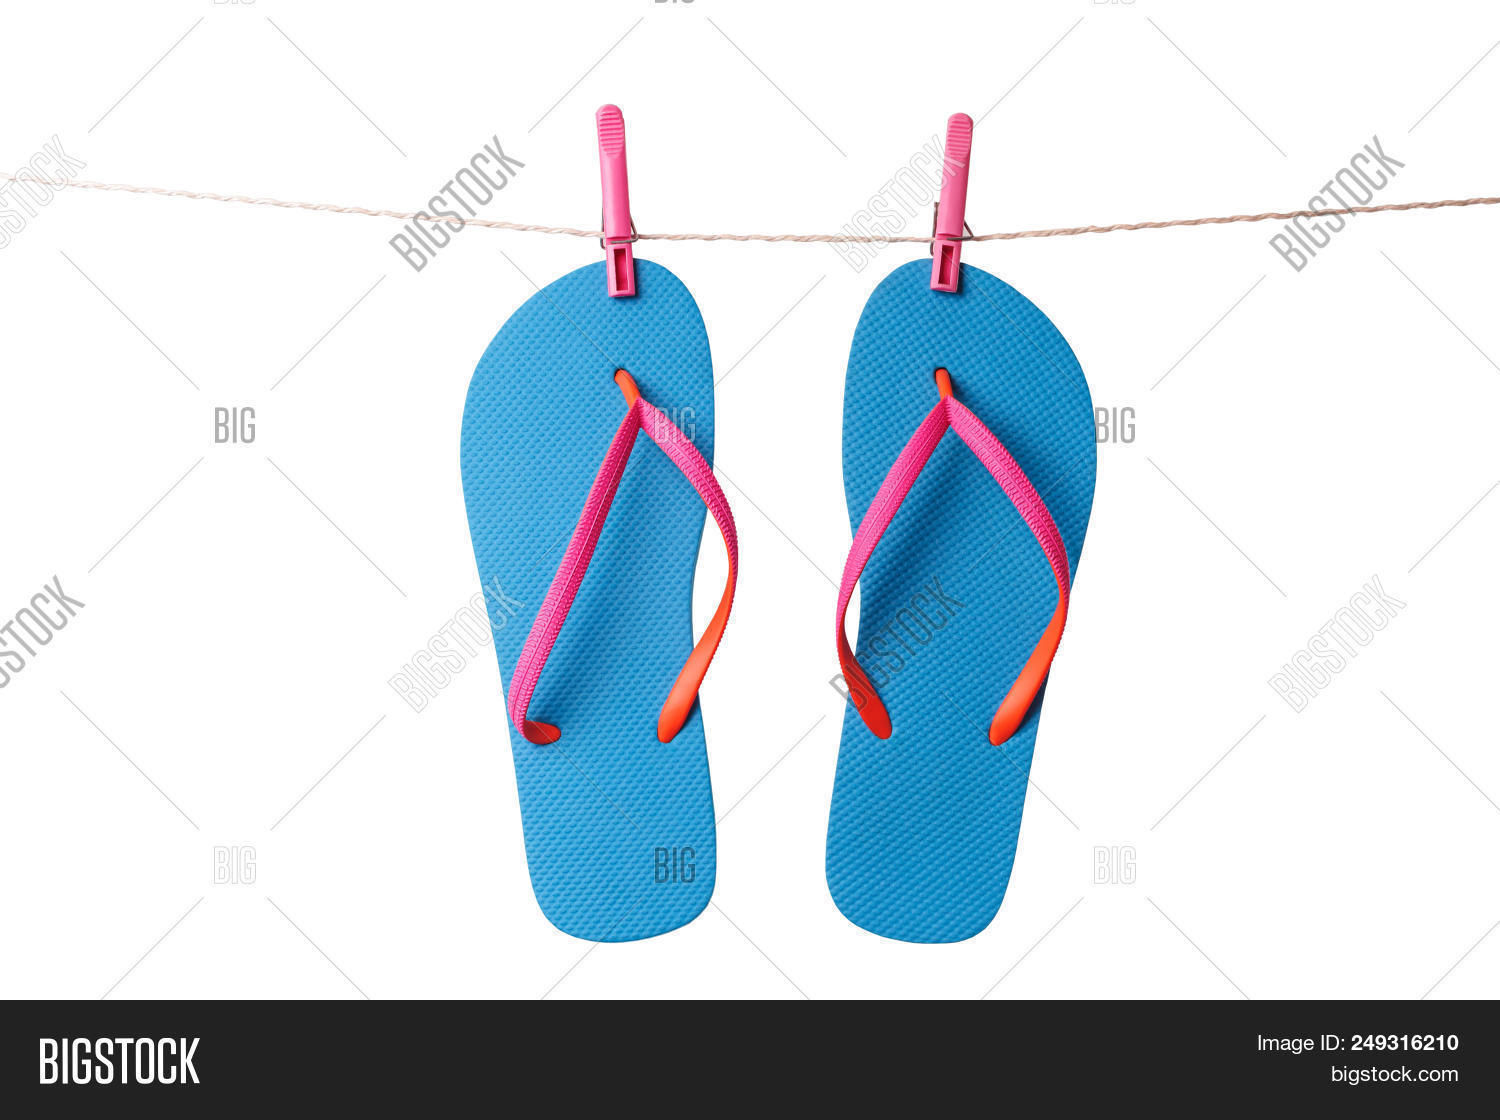 c03d9866c22d7c Blue Flip Flops Hanging On Clothesline Isolated On A White Background.  Vacation Concept